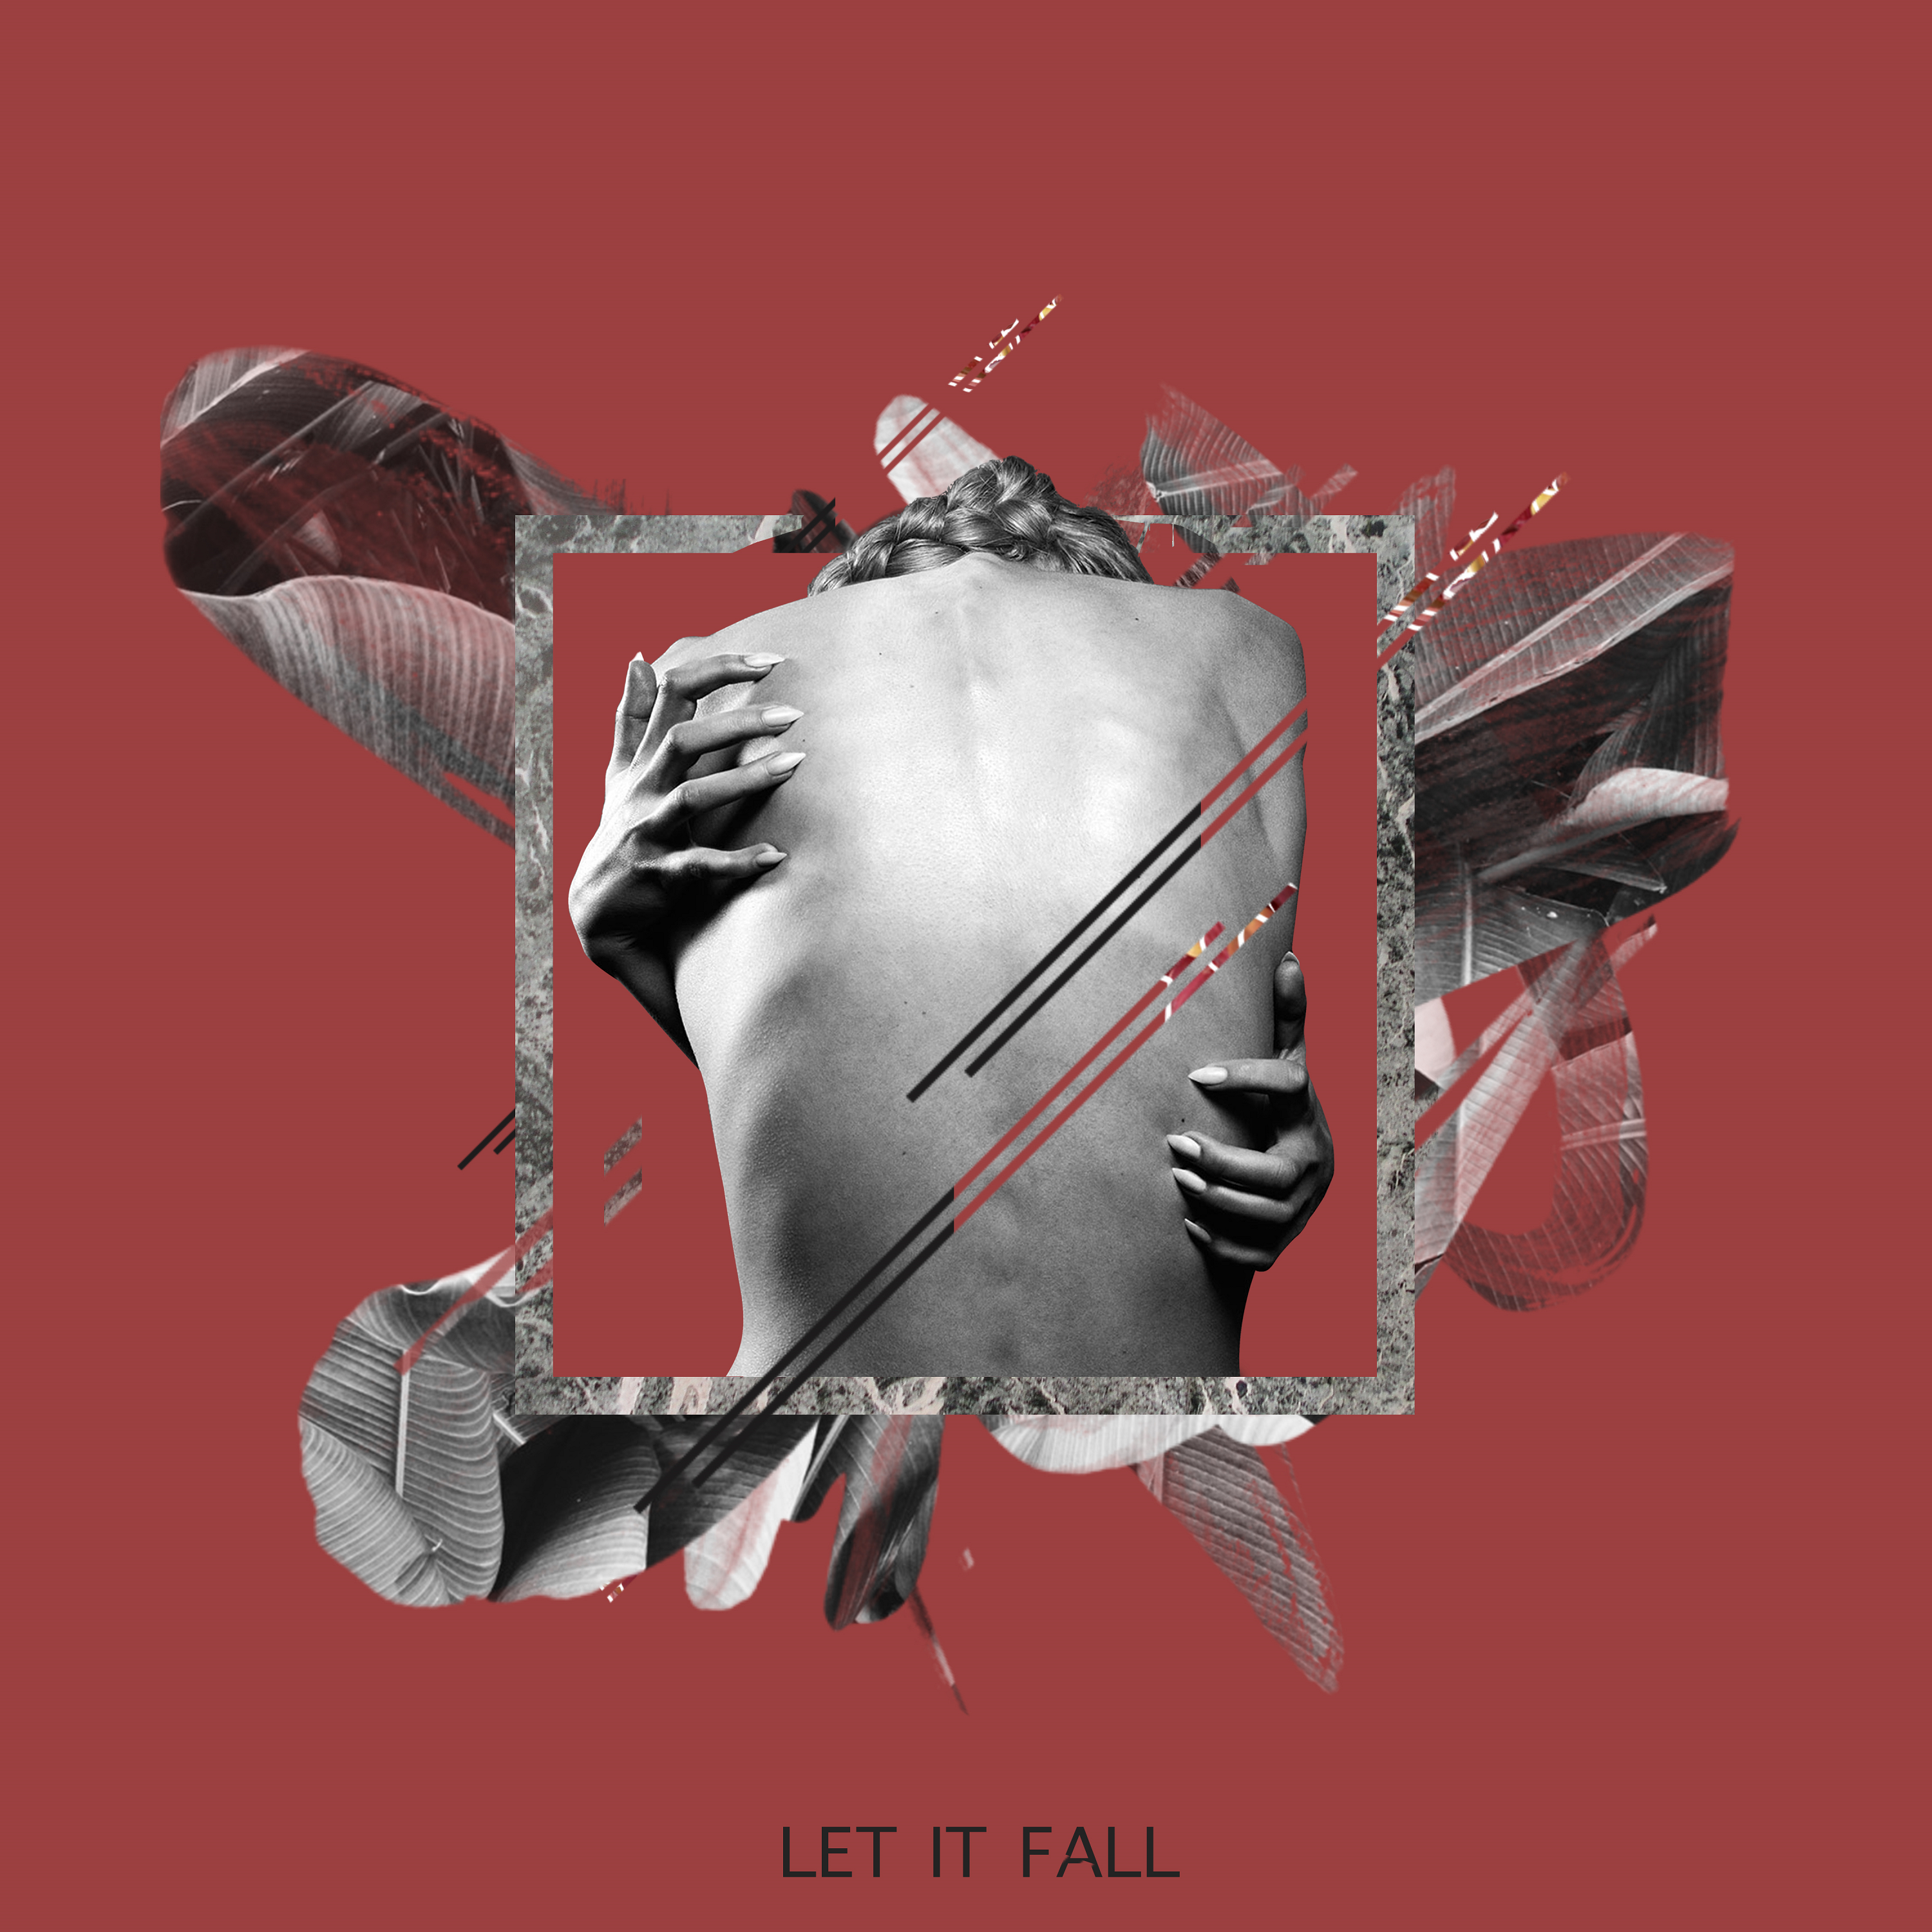 Let It Fall Remix Stems by Michael Mason - Free download on ToneDen